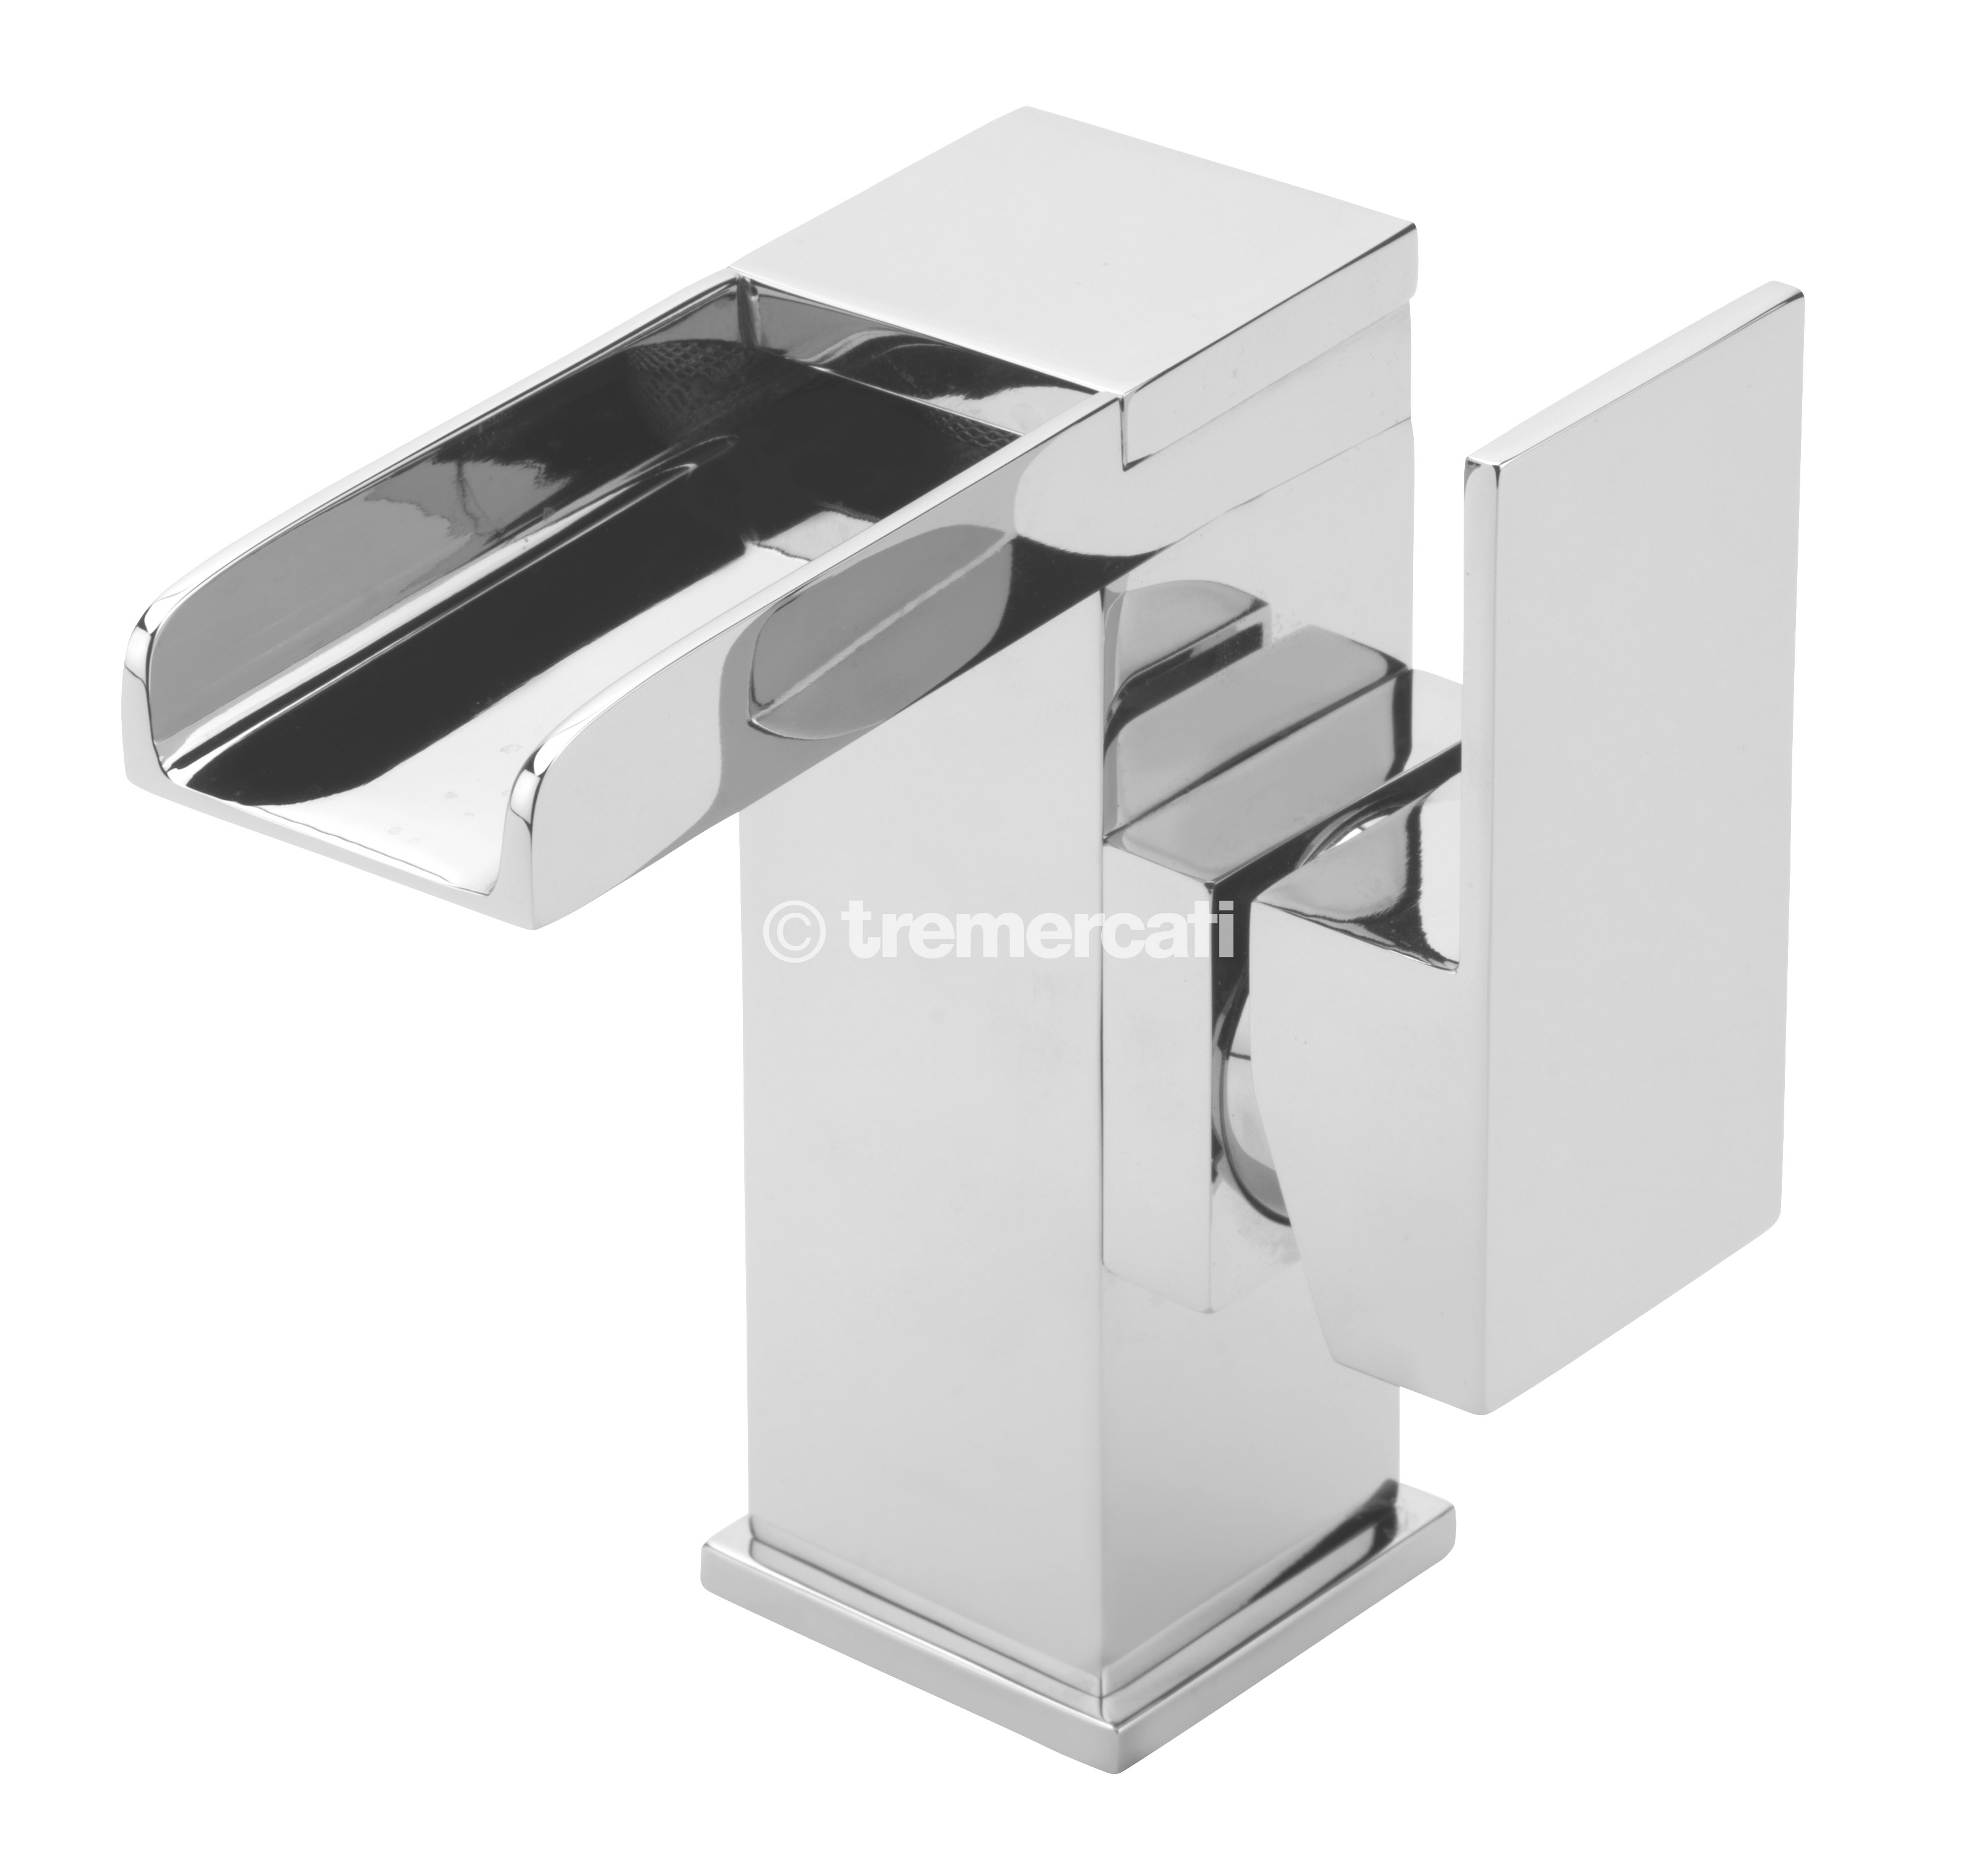 TRE MERCATI GEYSIR SIDE LEVER MONO BASIN MIXER WITH CLICK CLACK WASTE CHROME PLATED